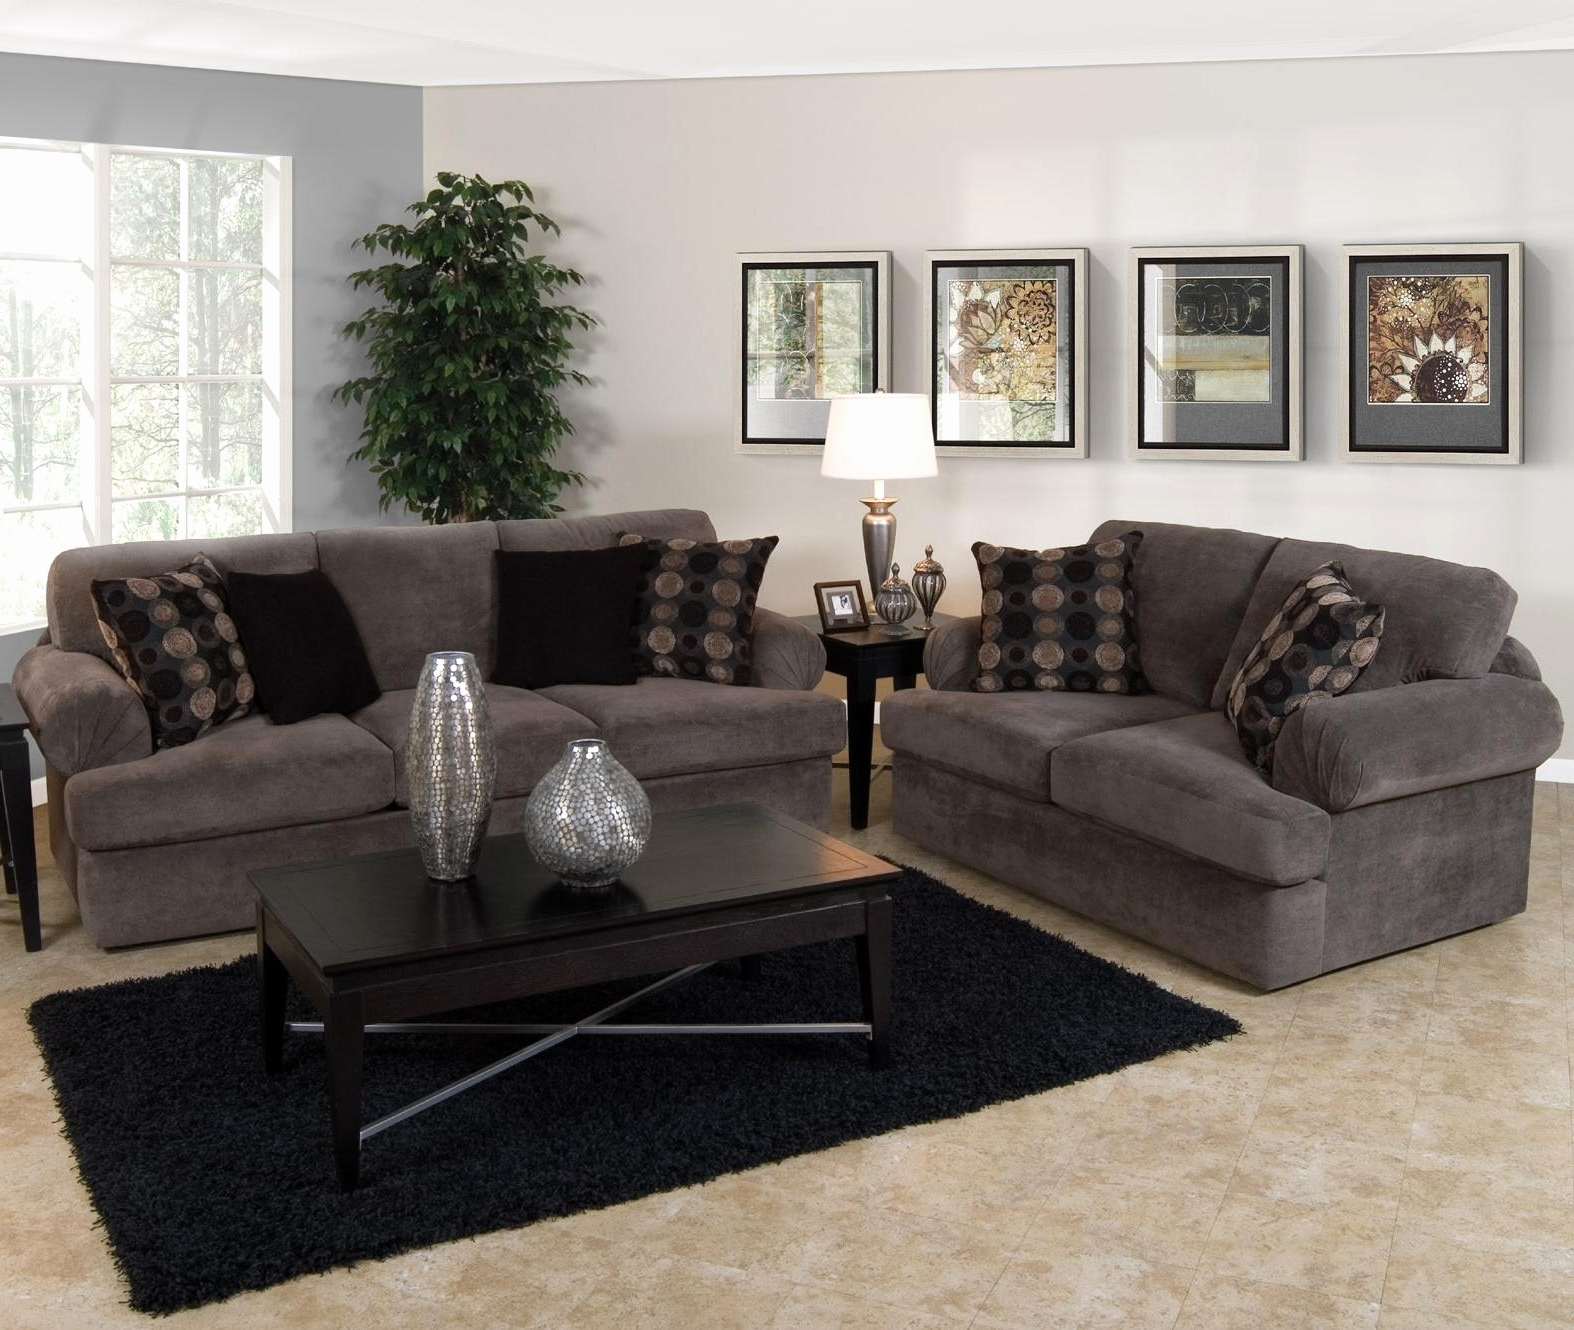 Fashionable Nova Scotia Sectional Sofas For Elegant England Sectional Sofa 2018 – Couches Ideas (View 5 of 15)